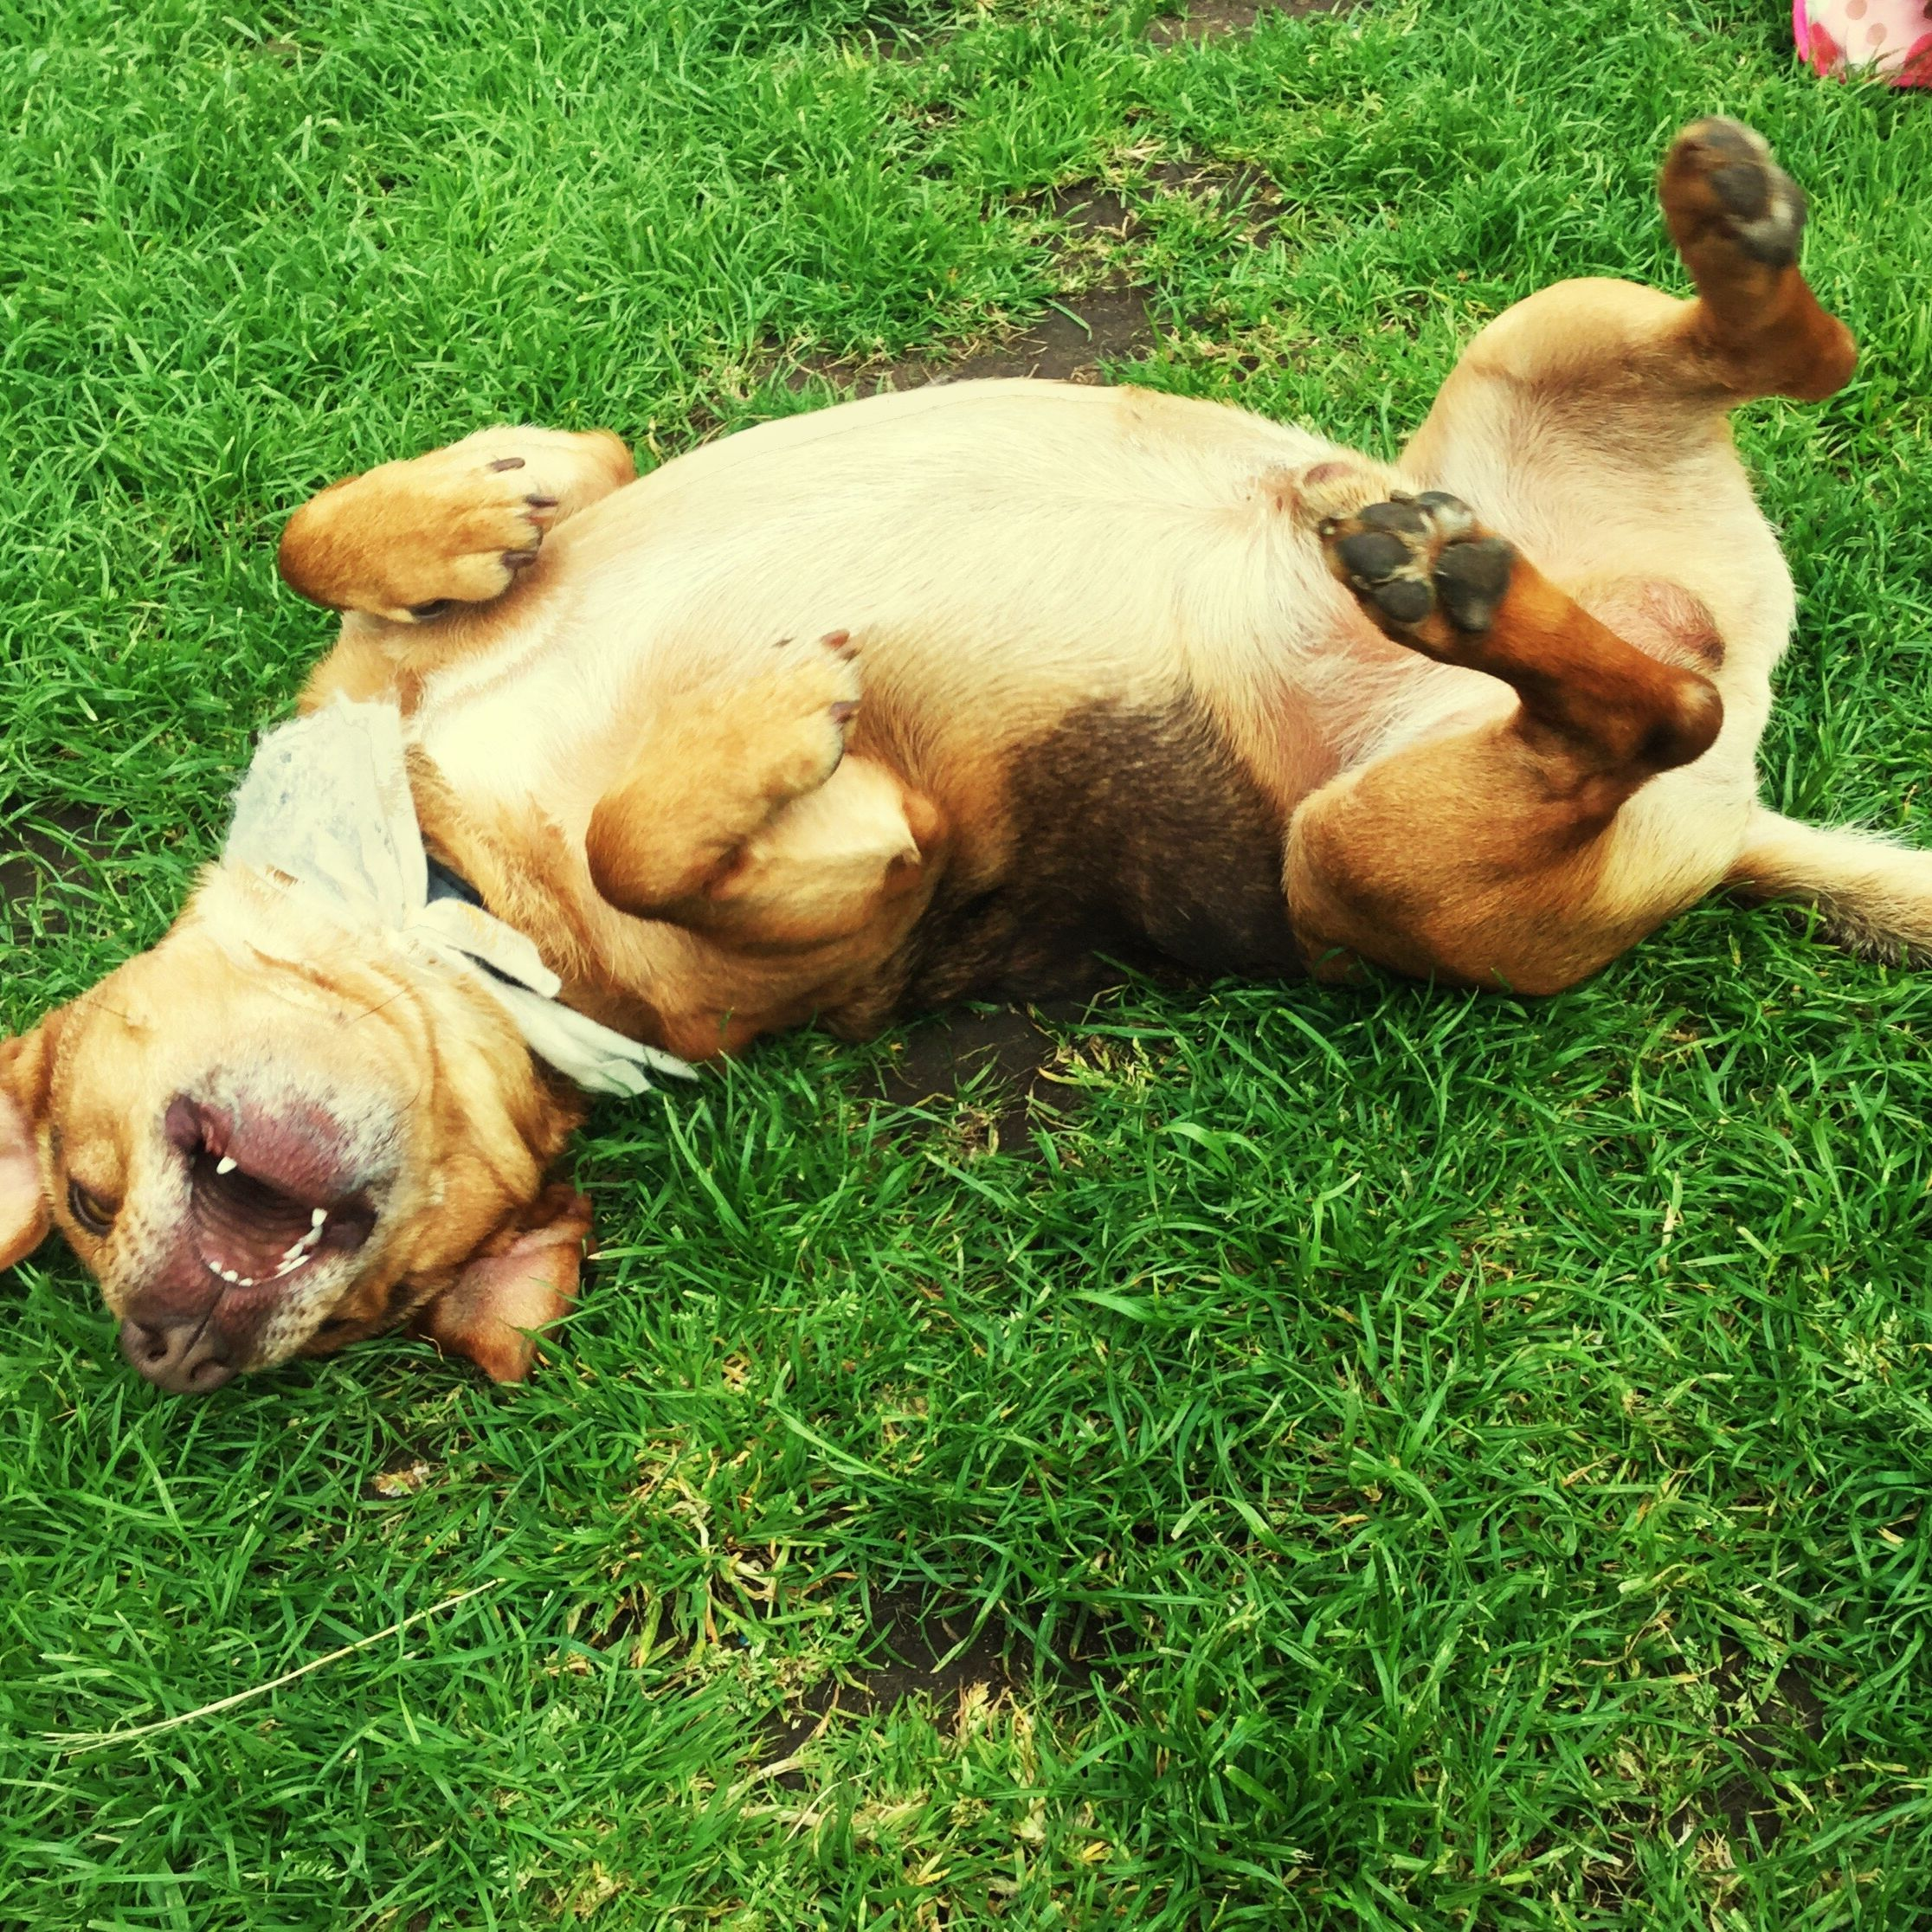 Why Dogs Roll In Poop and Other Stinky Things